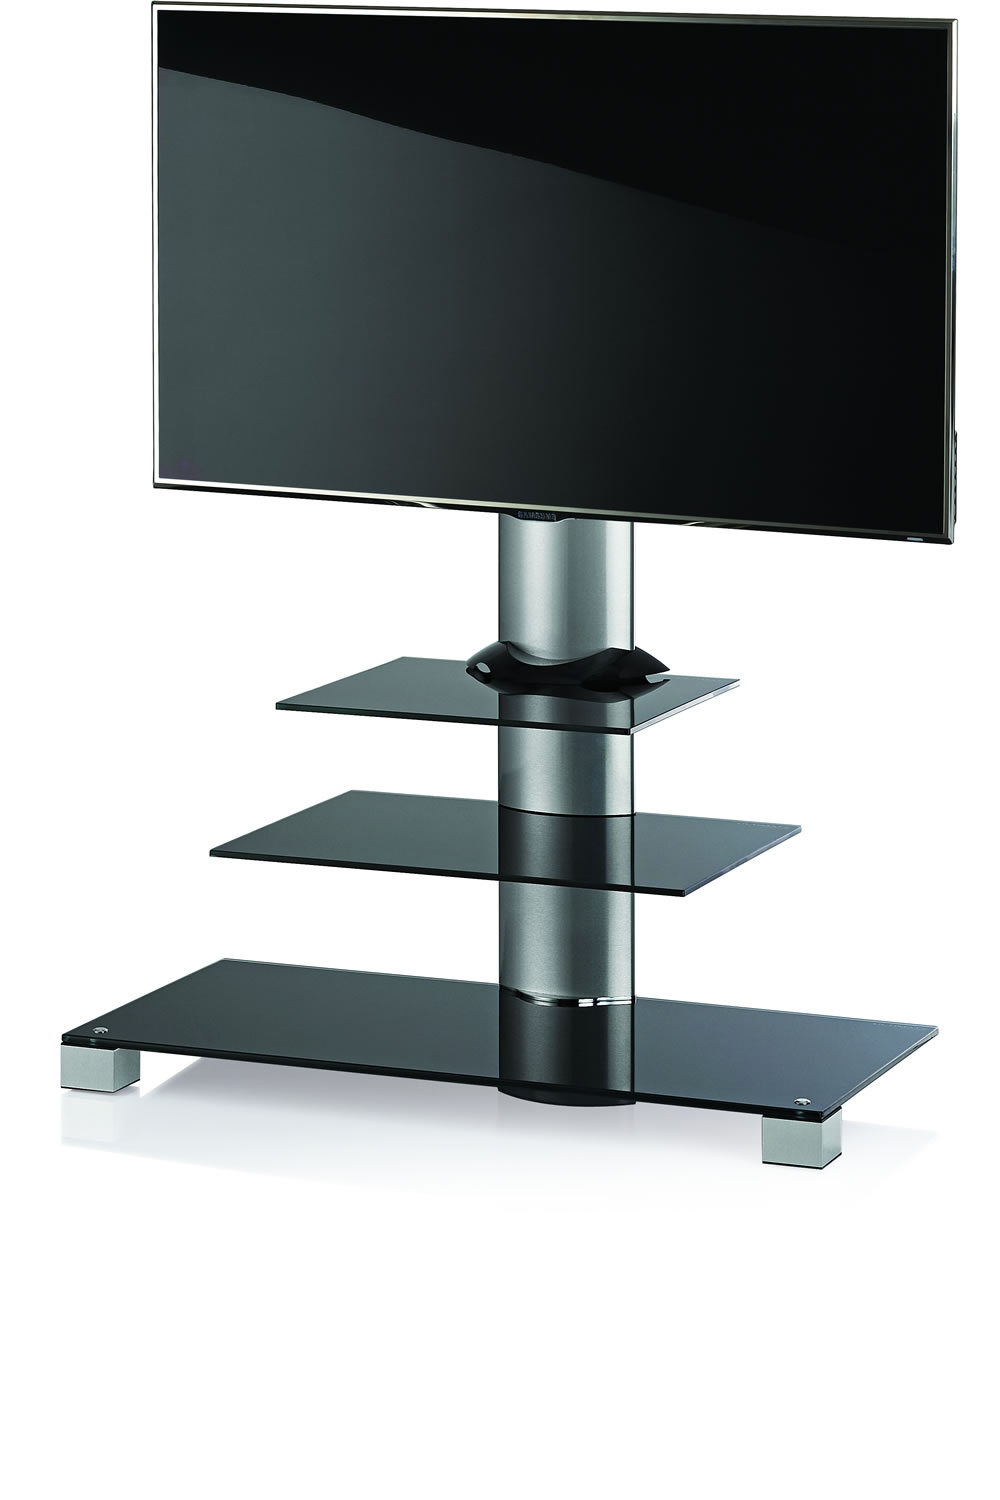 arcomm cd dvd fachmarkt hifi und tv moebel vcm tv standfuss amalo. Black Bedroom Furniture Sets. Home Design Ideas